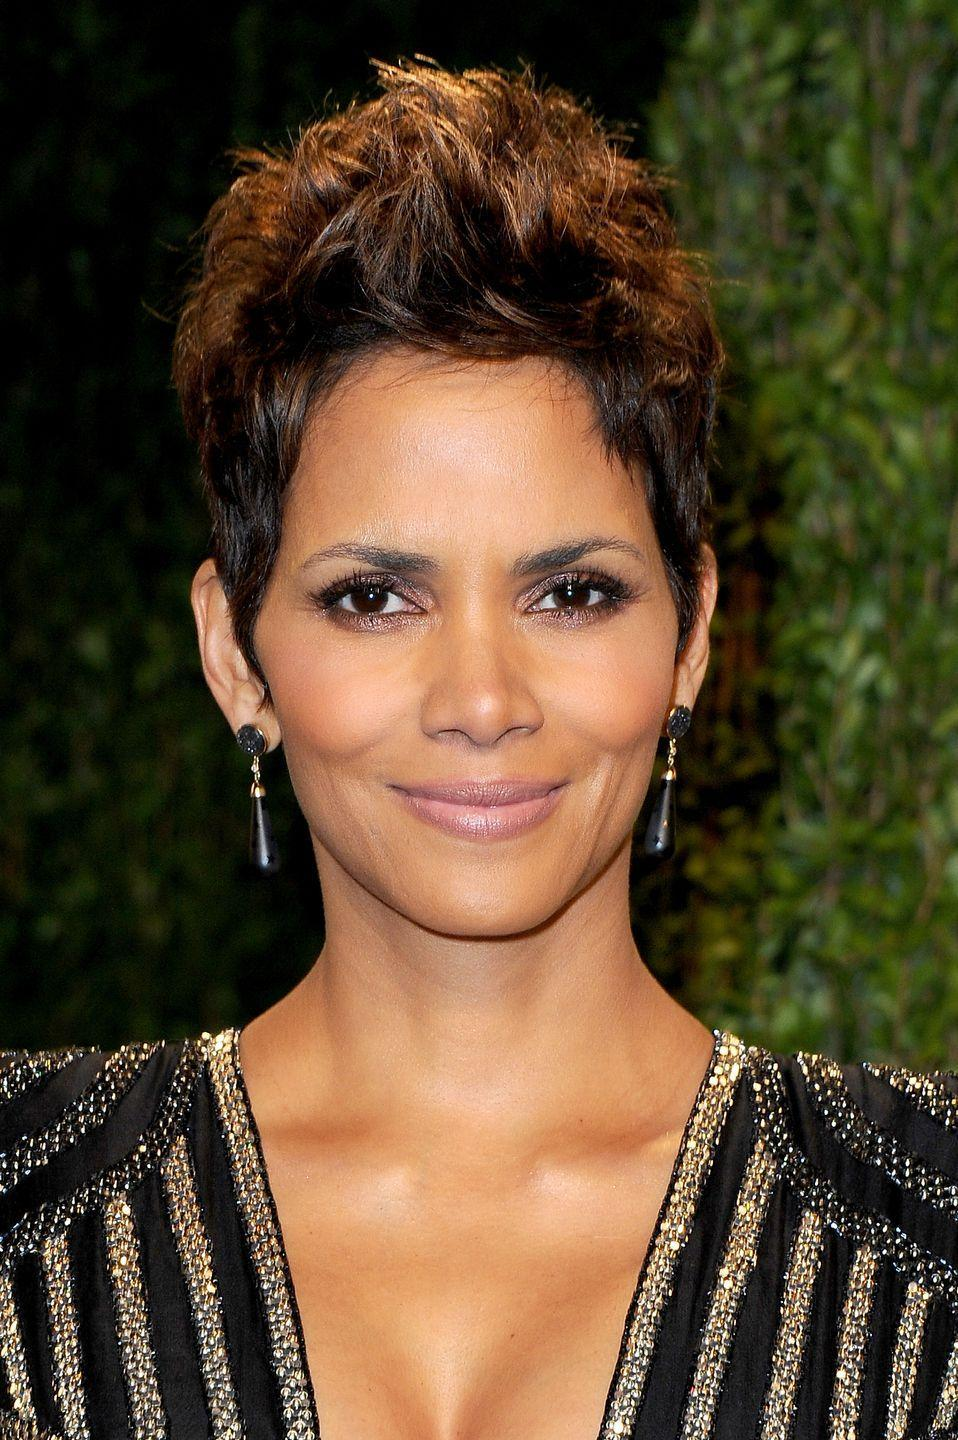 """<p>Actress <strong>Halle Berry </strong>is one of the first to rock a killer pixie cut. And honestly, her practically-perfect short hair will forever be loved. For easy, fool-proof styling, invest in a 1/2 inch <a href=""""https://www.goodhousekeeping.com/beauty-products/hair-styling-tool-reviews/g29022538/best-curling-wands/"""" rel=""""nofollow noopener"""" target=""""_blank"""" data-ylk=""""slk:curling wand"""" class=""""link rapid-noclick-resp"""">curling wand</a> to add texture to your short 'do. </p><p><a class=""""link rapid-noclick-resp"""" href=""""https://www.amazon.com/dp/B003F2T0M4?tag=syn-yahoo-20&ascsubtag=%5Bartid%7C10055.g.35472268%5Bsrc%7Cyahoo-us"""" rel=""""nofollow noopener"""" target=""""_blank"""" data-ylk=""""slk:SHOP CURLING WAND"""">SHOP CURLING WAND</a></p>"""